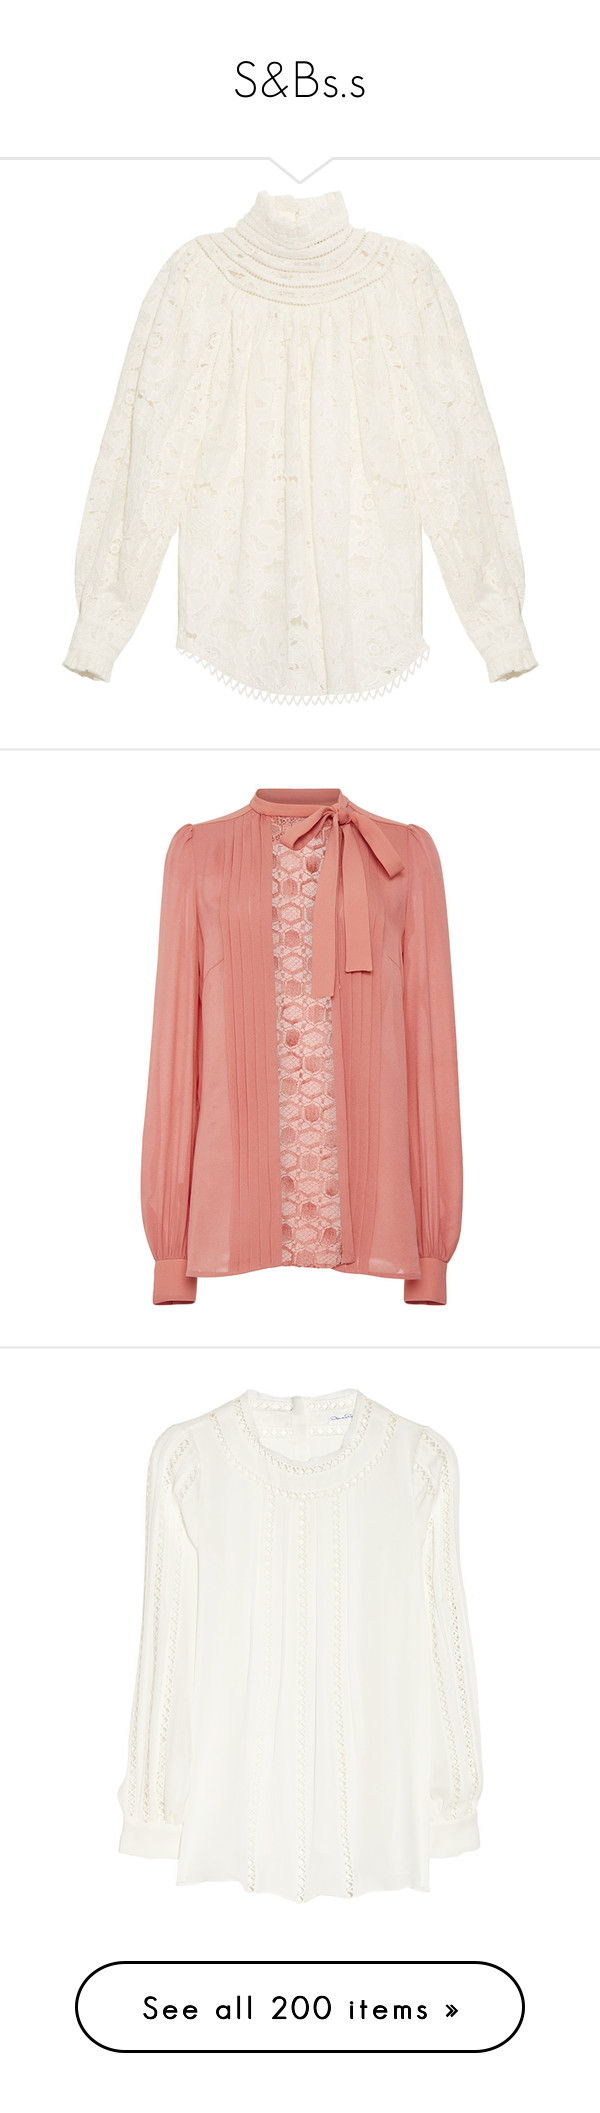 """""""S&Bs.s"""" by duchessq ❤ liked on Polyvore featuring tops, blouses, zimmermann, white, ruffle top, ruffle blouse, white ruffle blouse, white summer blouse, white blouse and shirts"""